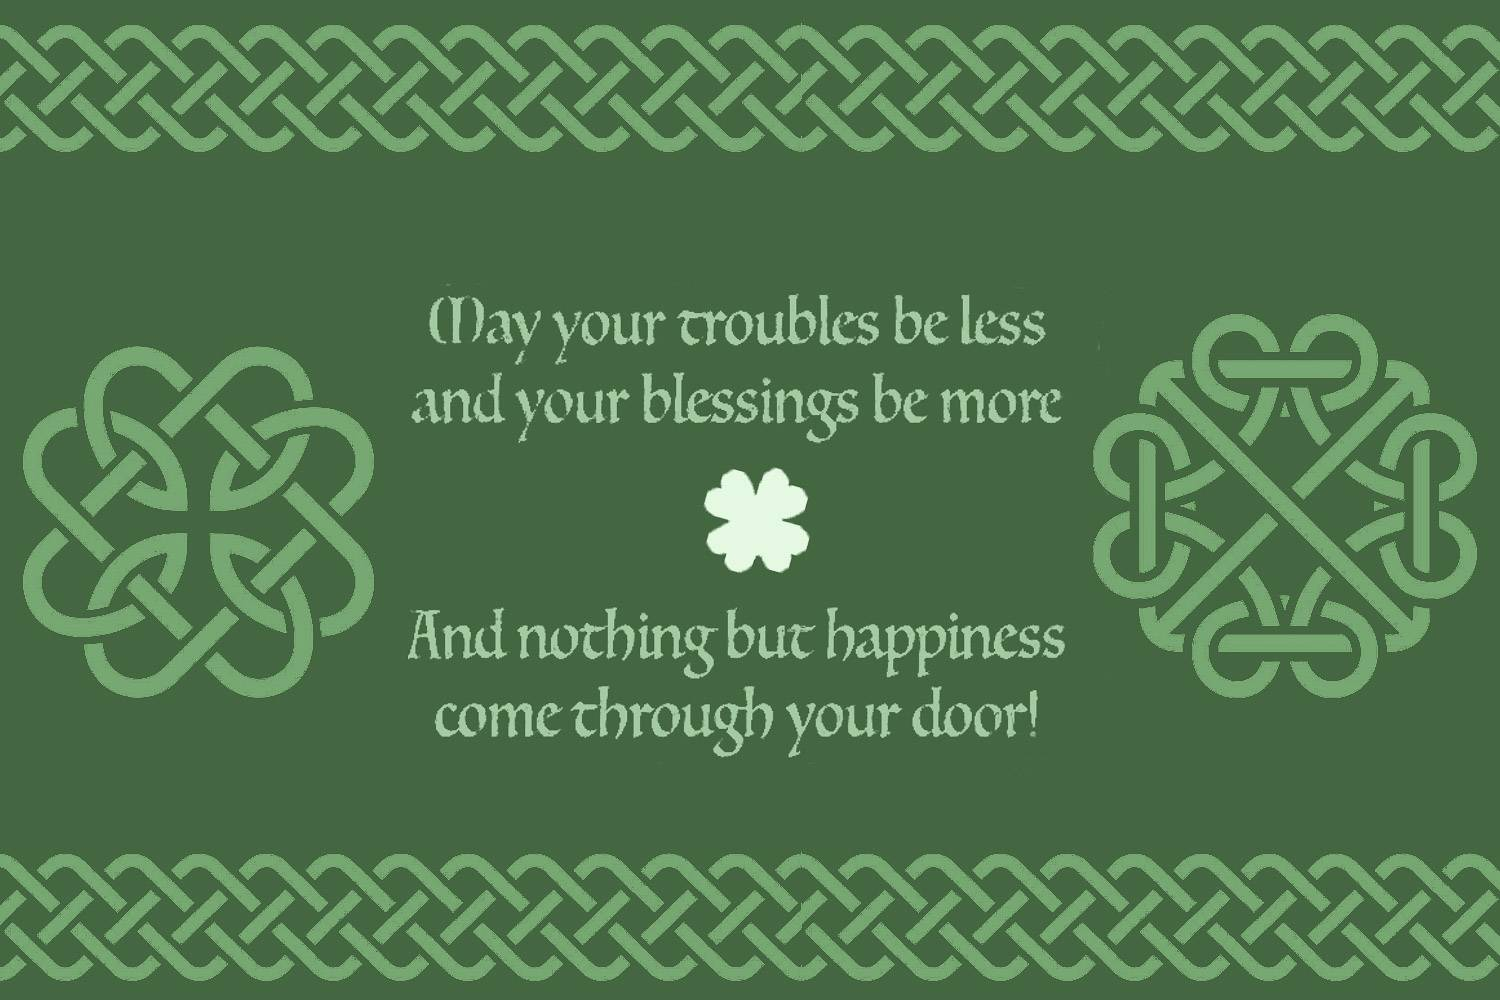 Image of an Irish house blessing written on green background with Celtic knot design and shamrocks